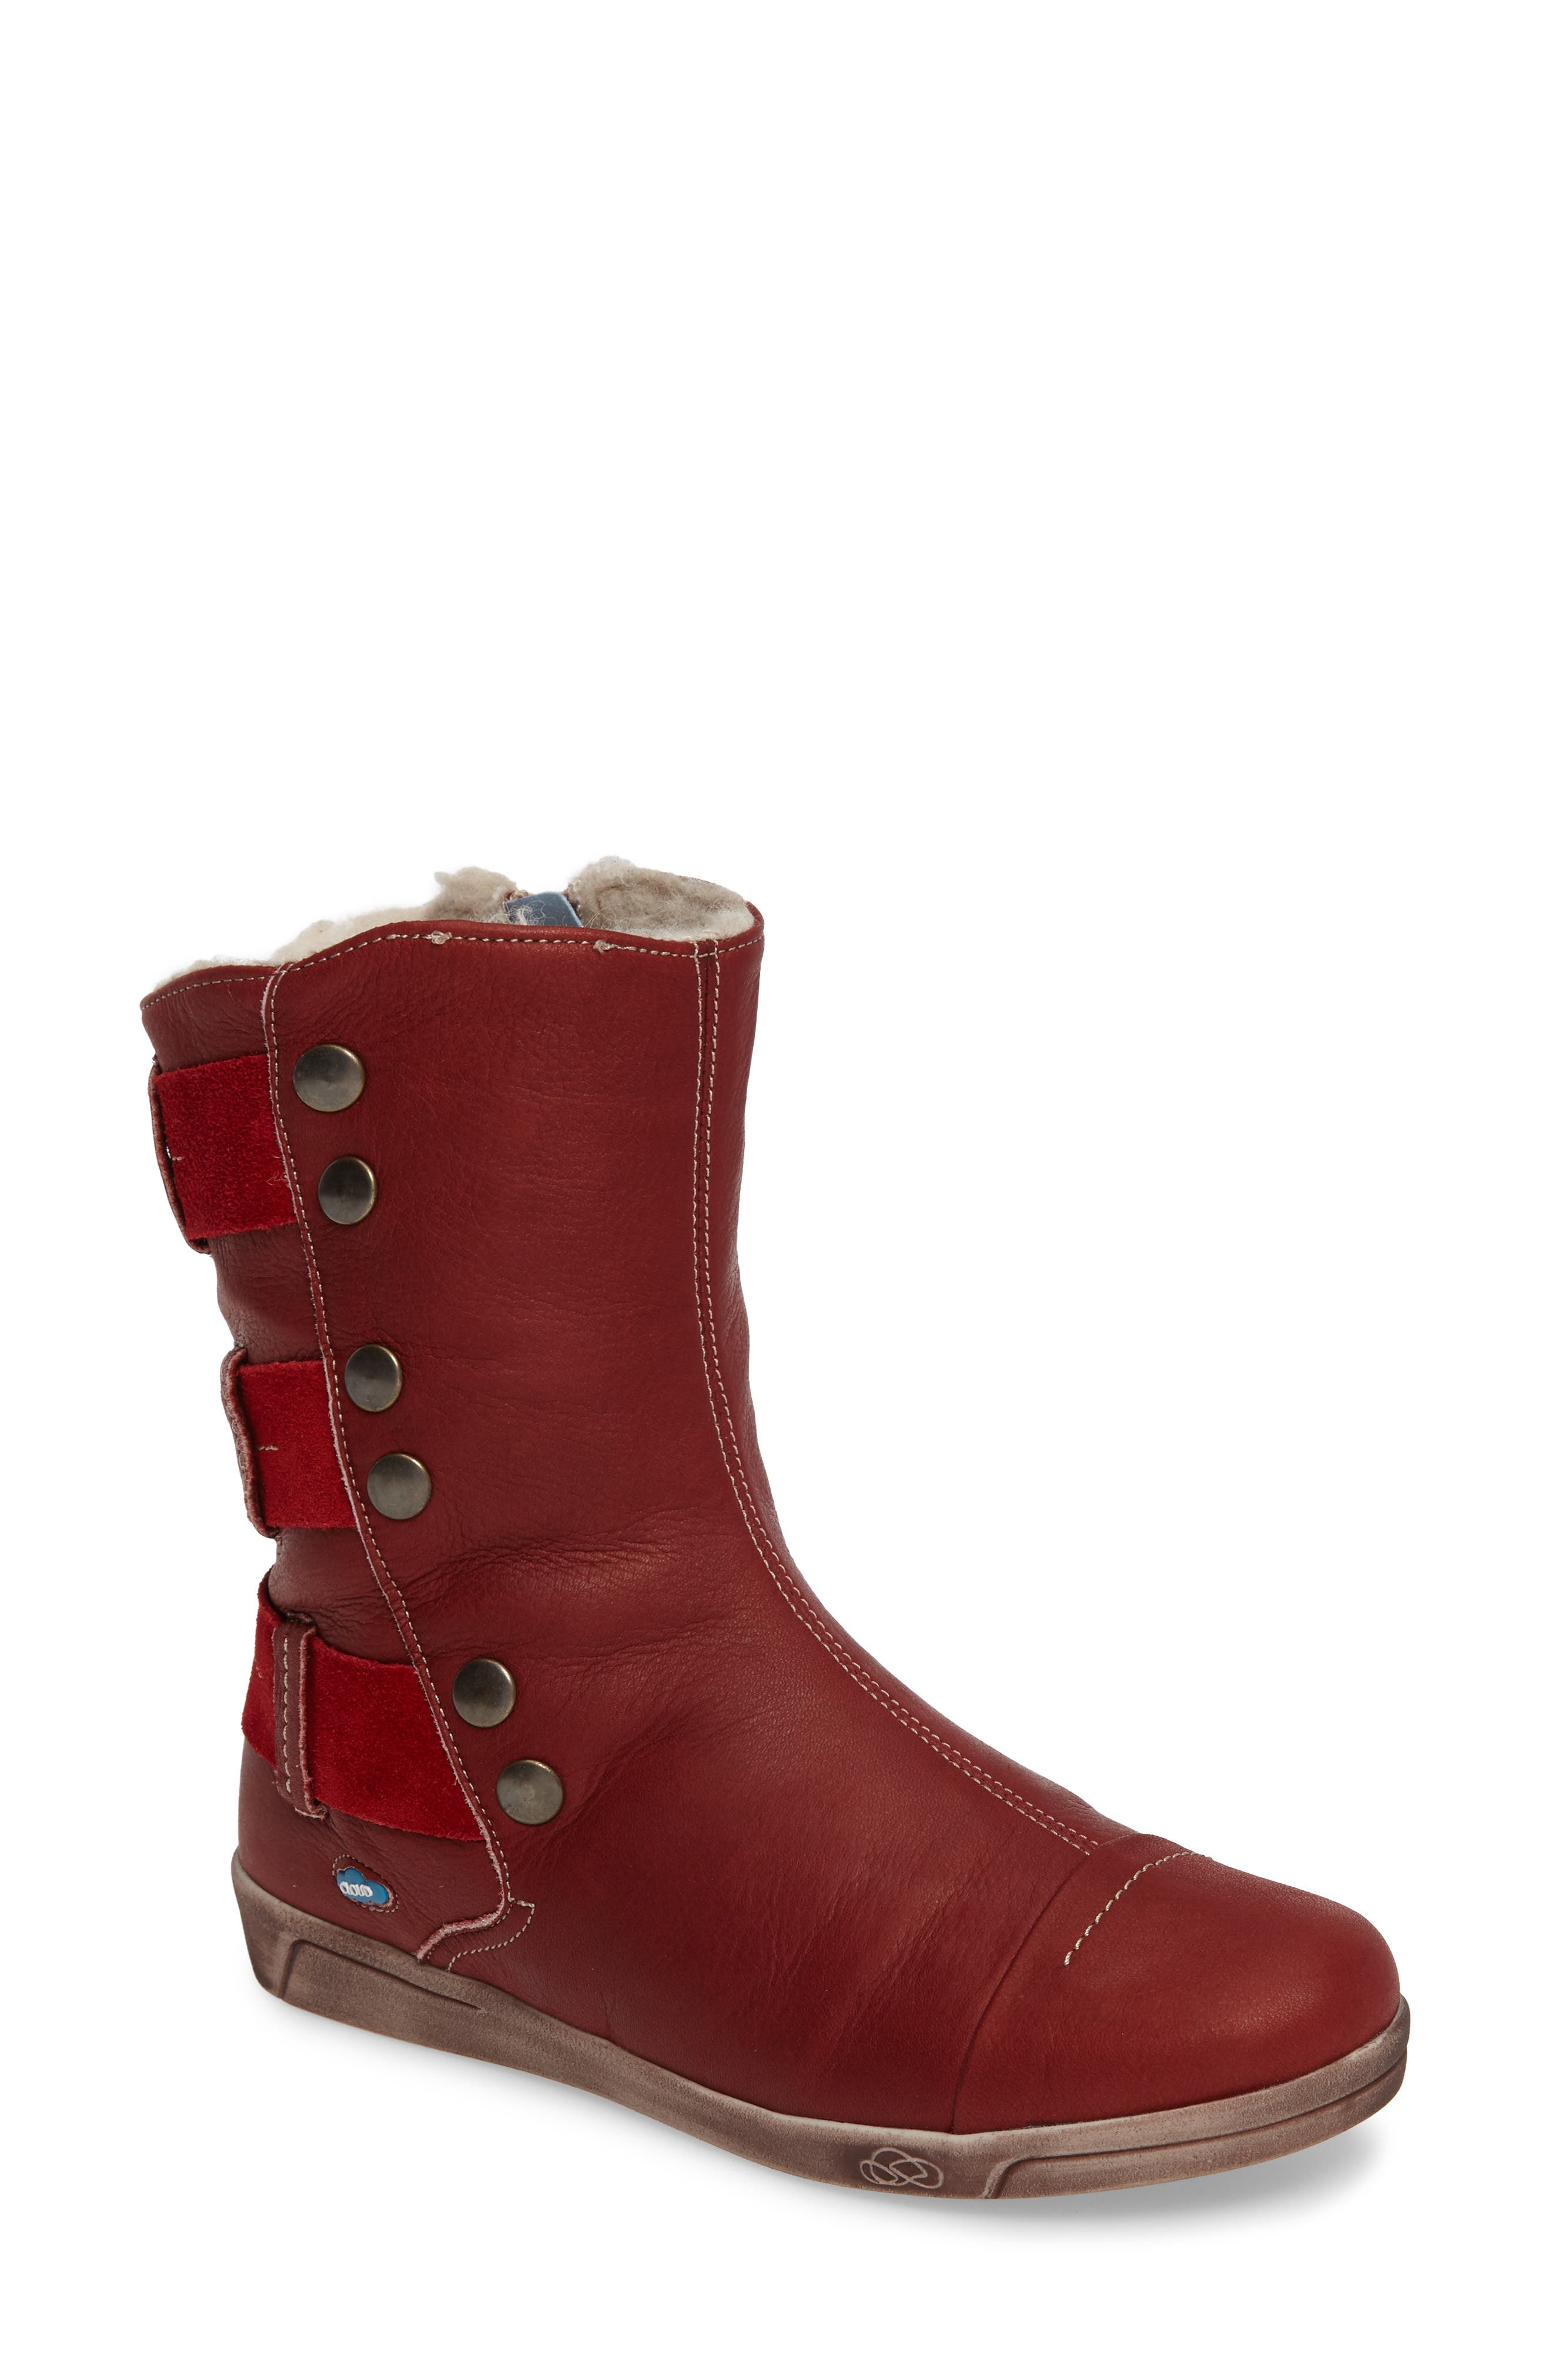 Amber Wool Lined Bootie,                         Main,                         color, Red Leather